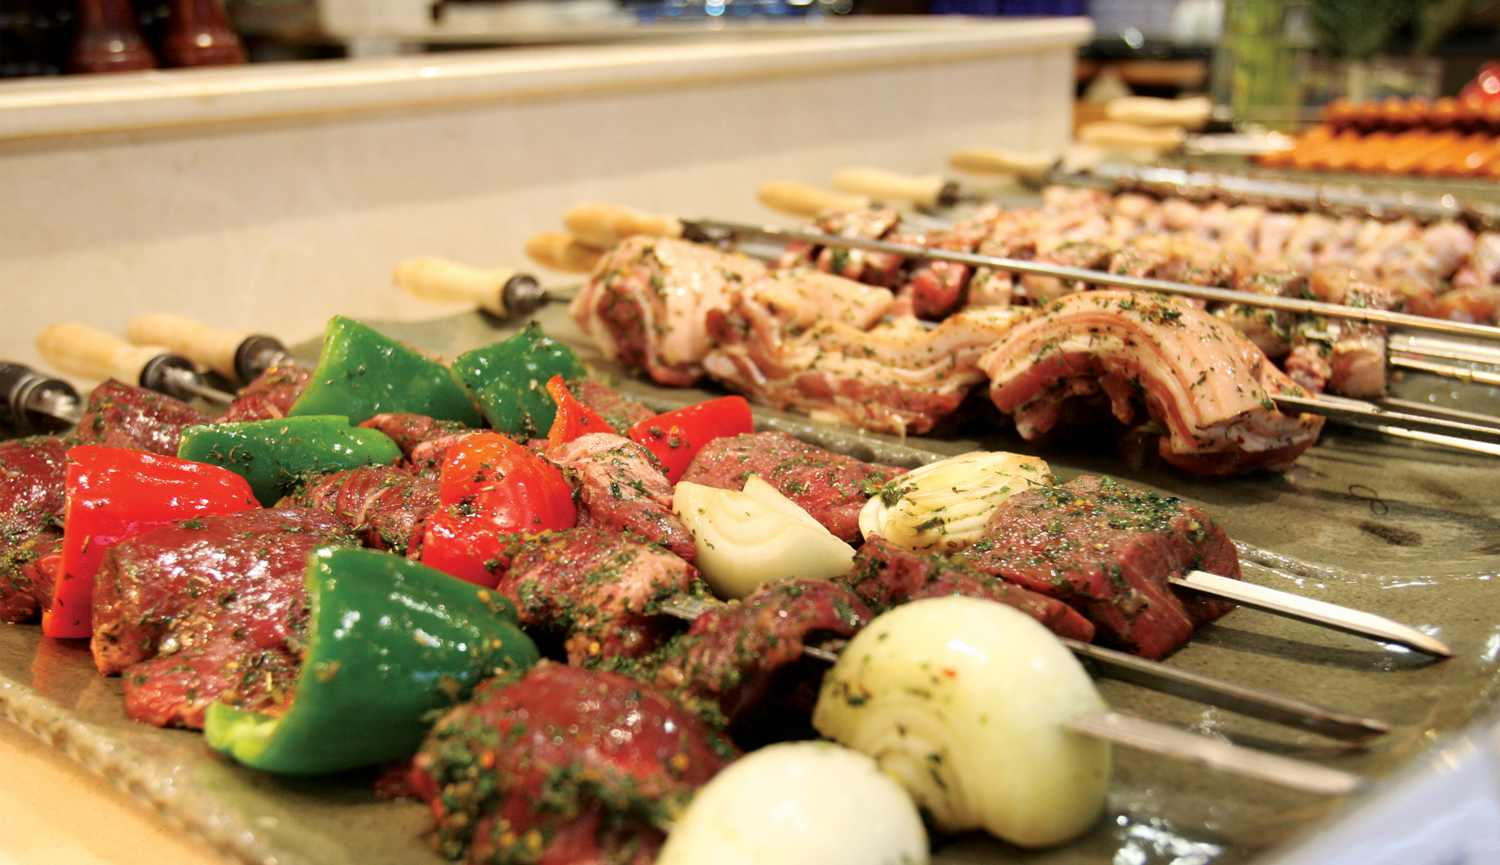 TODAI Buffet - Churrasco Section